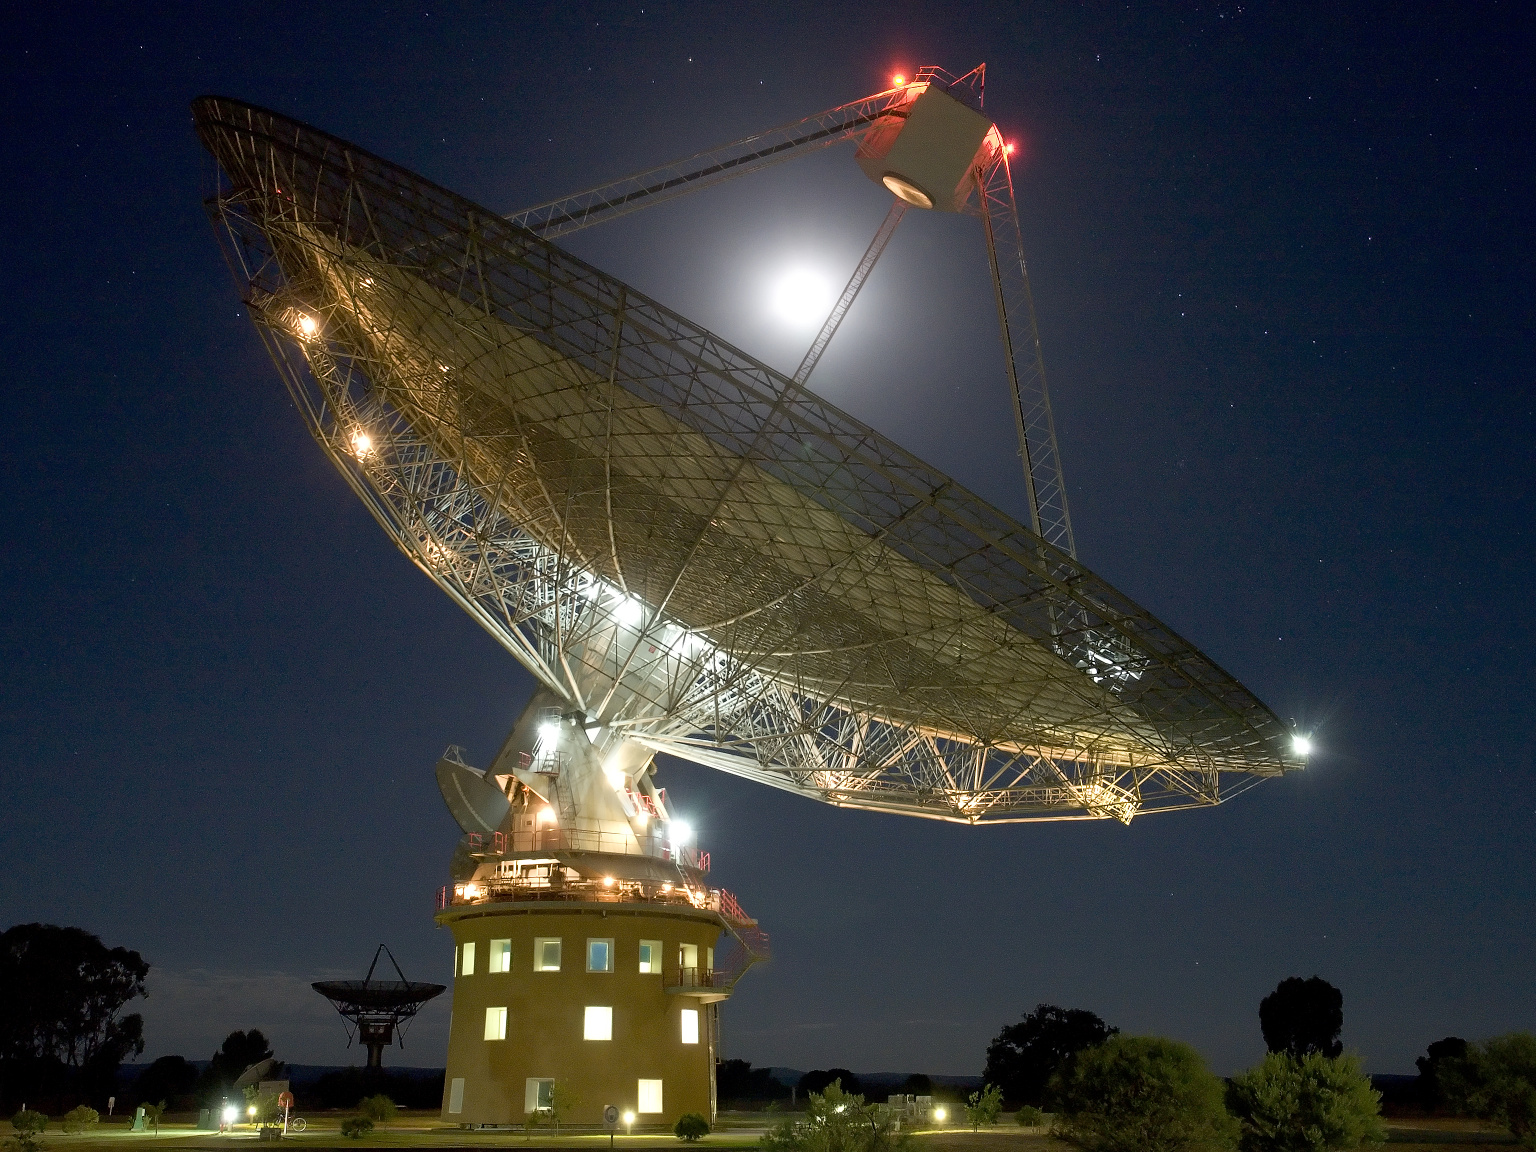 """The 64-metre-wide Parkes Radio Telescope in New South Wales, Australia is affectionately known as """"The Dish."""" It played an iconic role in receiving the first deliberate transmissions from the surface of another world, as the astronauts of Apollo11 set foot on our Moon. Now, Parkes joins once again in expanding human horizons as we search for the answer to one of our oldest questions: Are we alone? Image credit: Parkes Radio Telescope © 2005 Shaun Amy."""